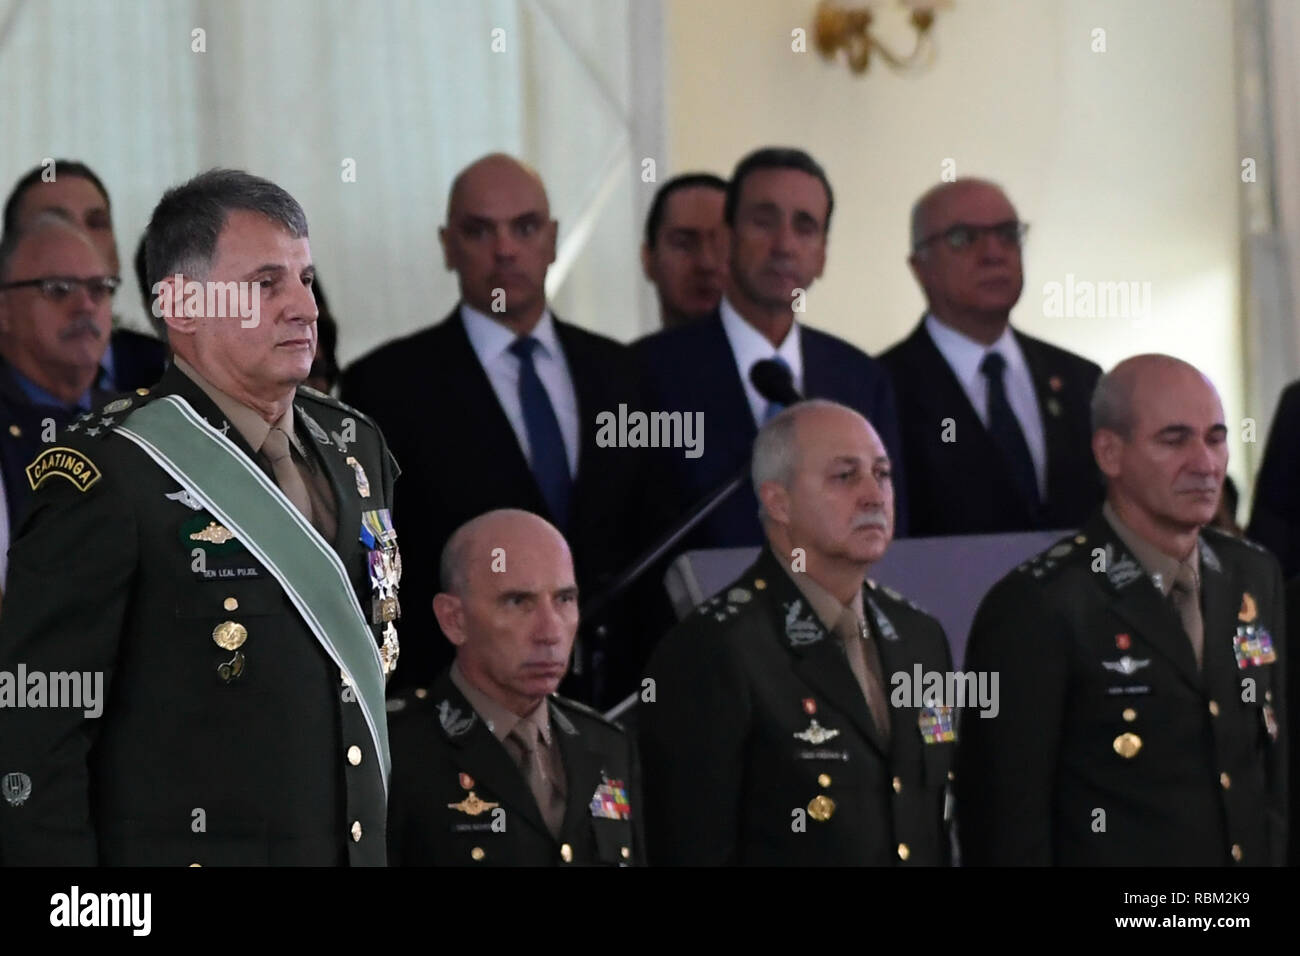 DF - Brasilia - 10/01/2019 - Possession of the General Commander of the Army - General Edson Leal Pujol this Friday, January 11, during the solemnity of passage of the general command of the army of General Eduardo Dias da Costa Army Villas Boa to the General de Army Edson Leal Pujol in a ceremony held at the Clube do Exercito. Photo: Mateus Bonomi / AGIF - Stock Image